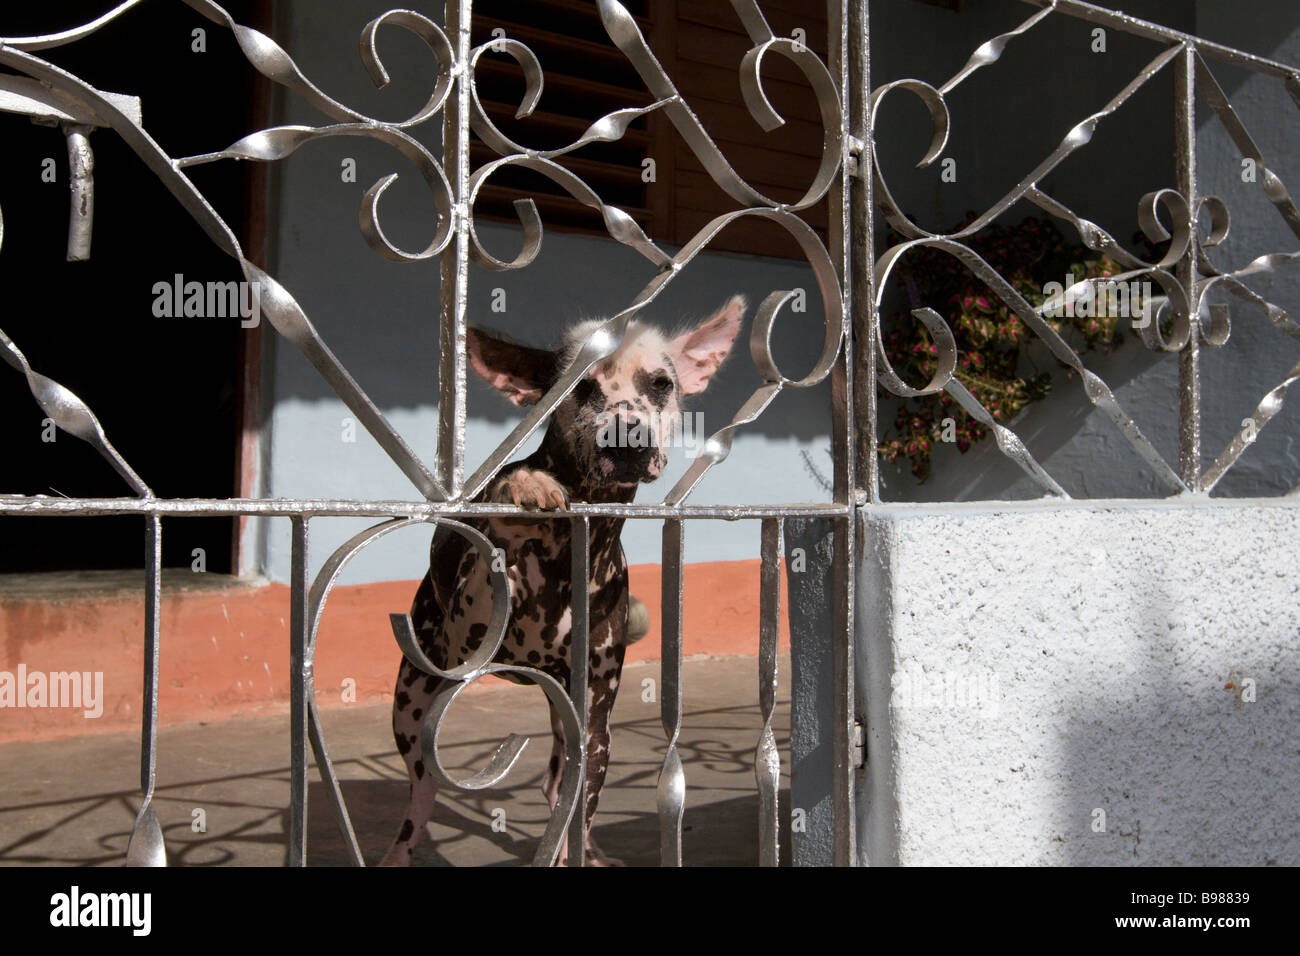 A hairless dog looking through fence in Trinidad, Cuba - Stock Image